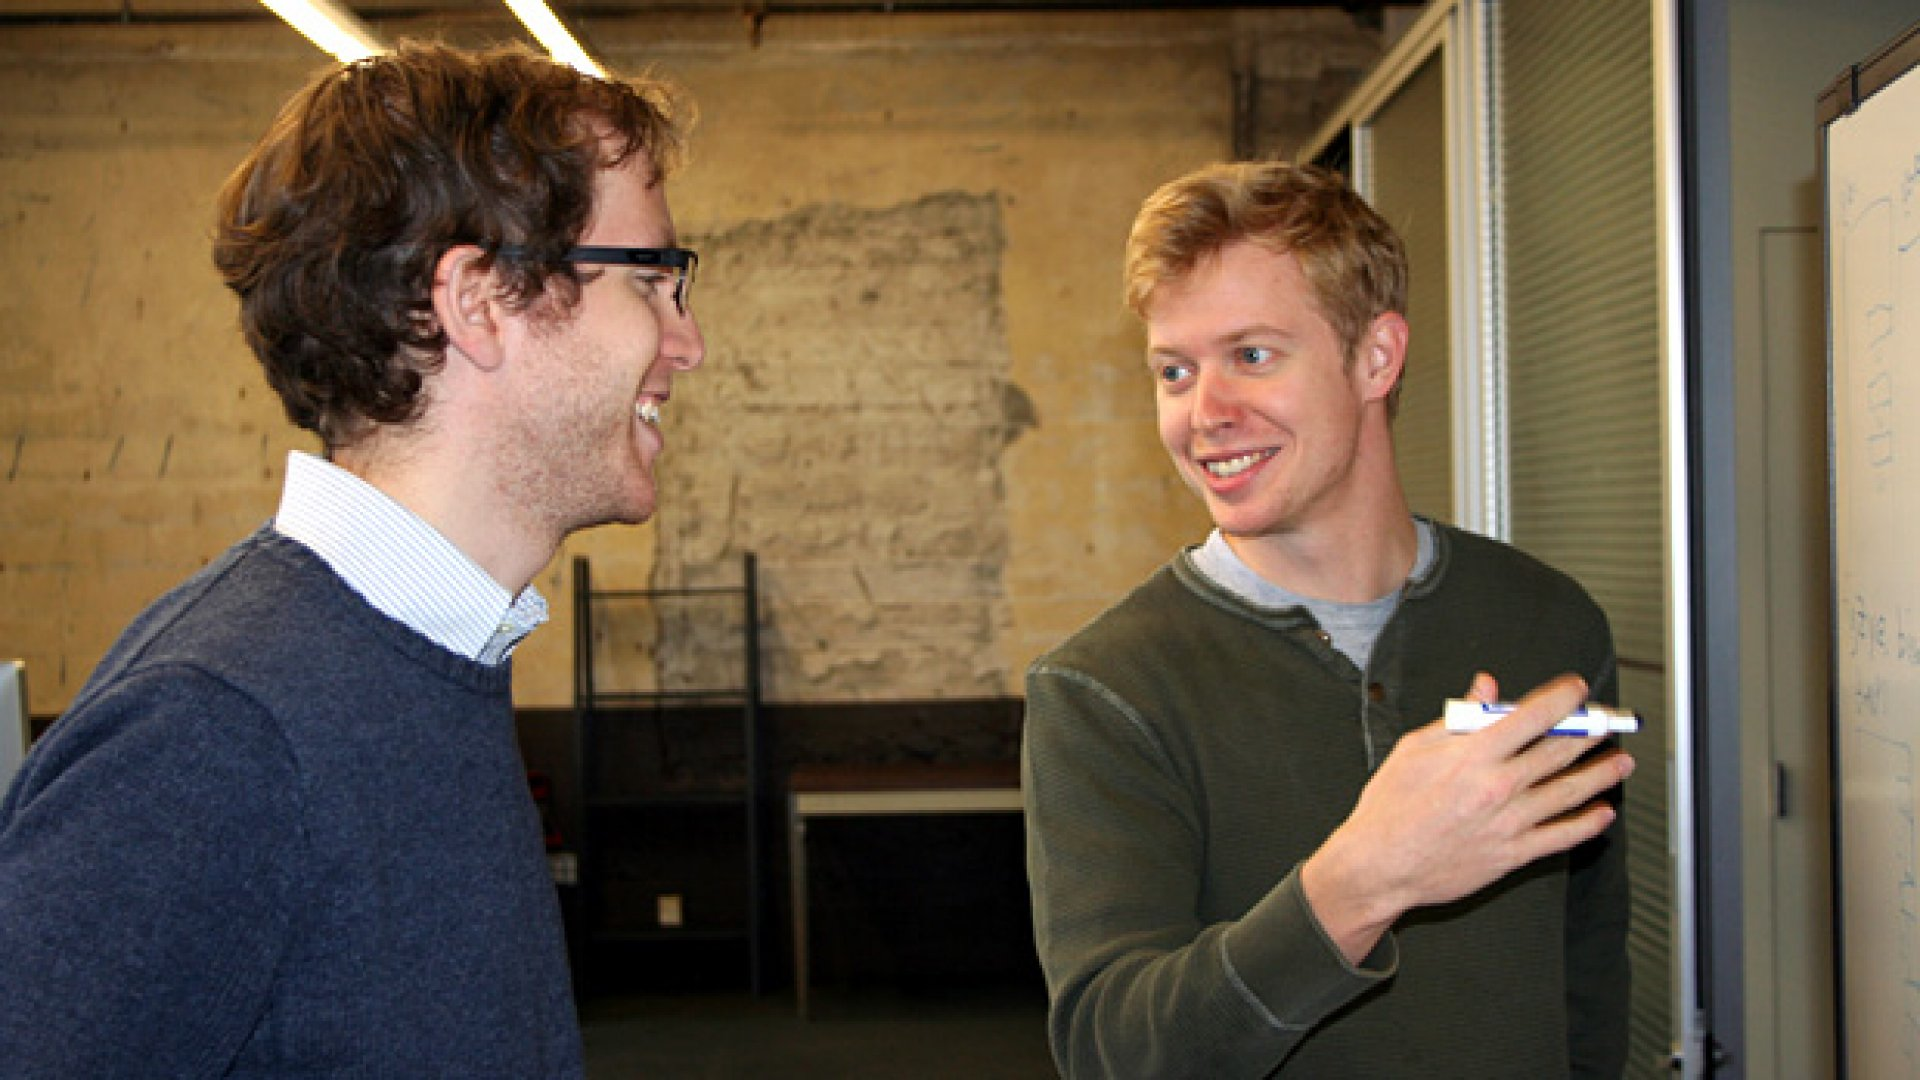 Adam Goldstein and Steve Huffman, co-founders of Hipmunk